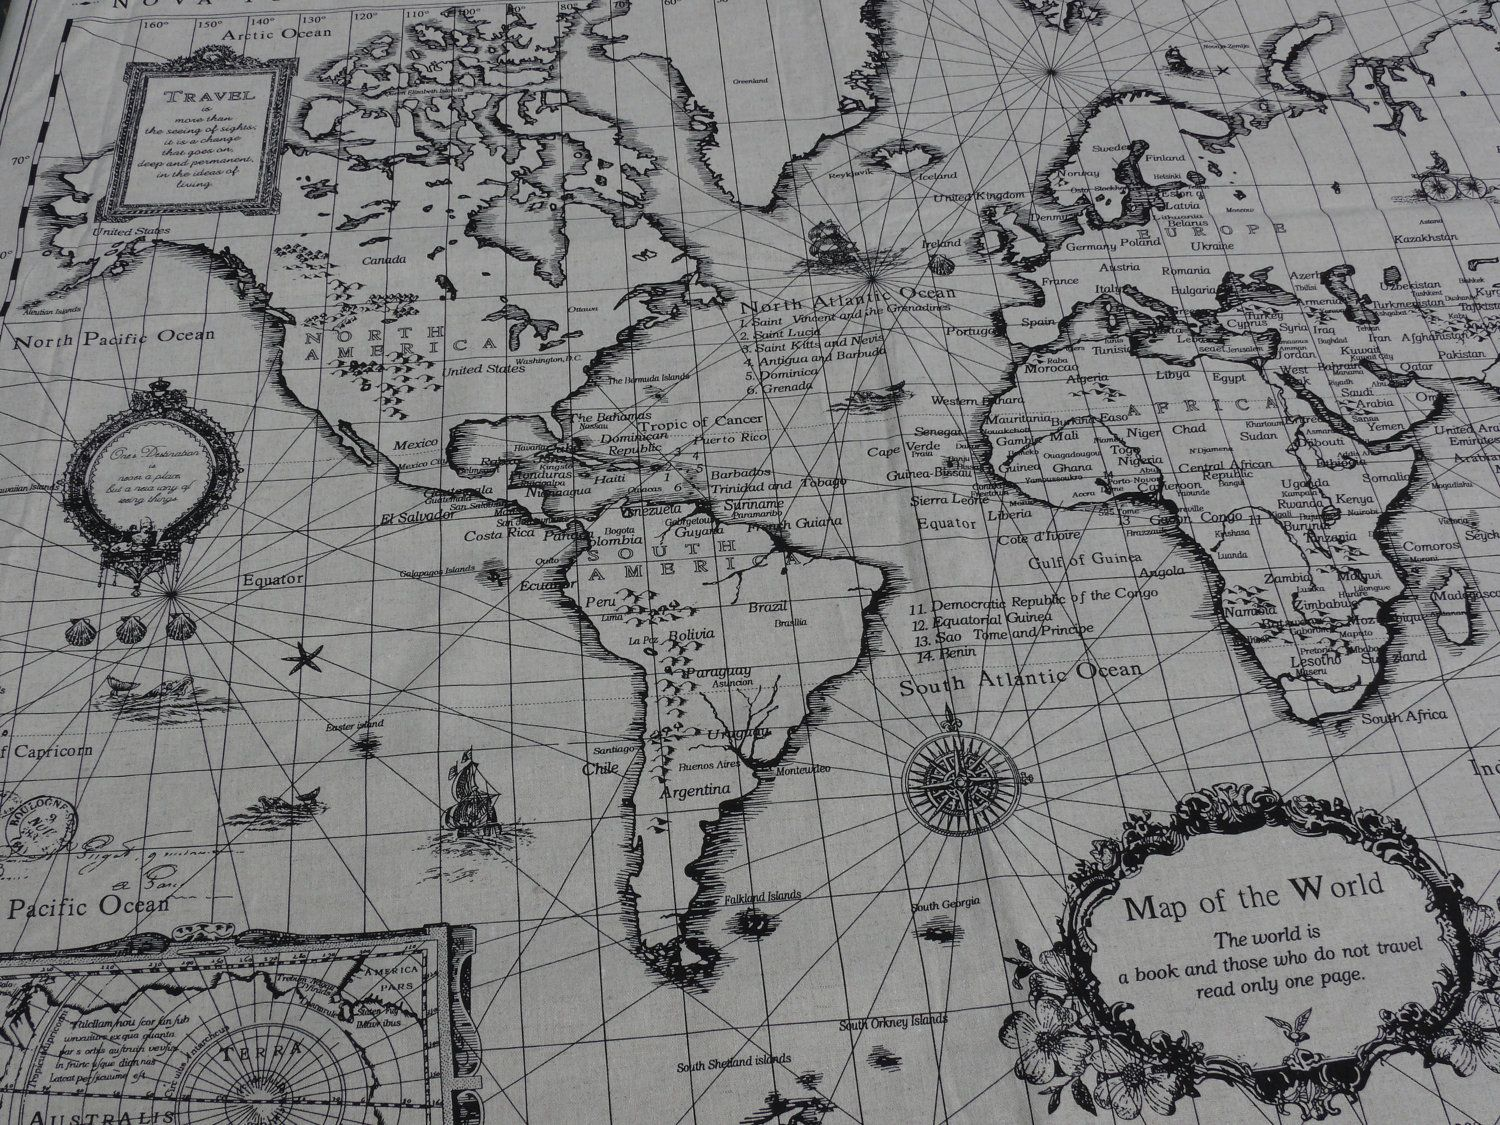 World map print linen cotton blended fabric 1 panel by cuteone world map print linen cotton blended fabric 1 panel by cuteone 800 gumiabroncs Choice Image